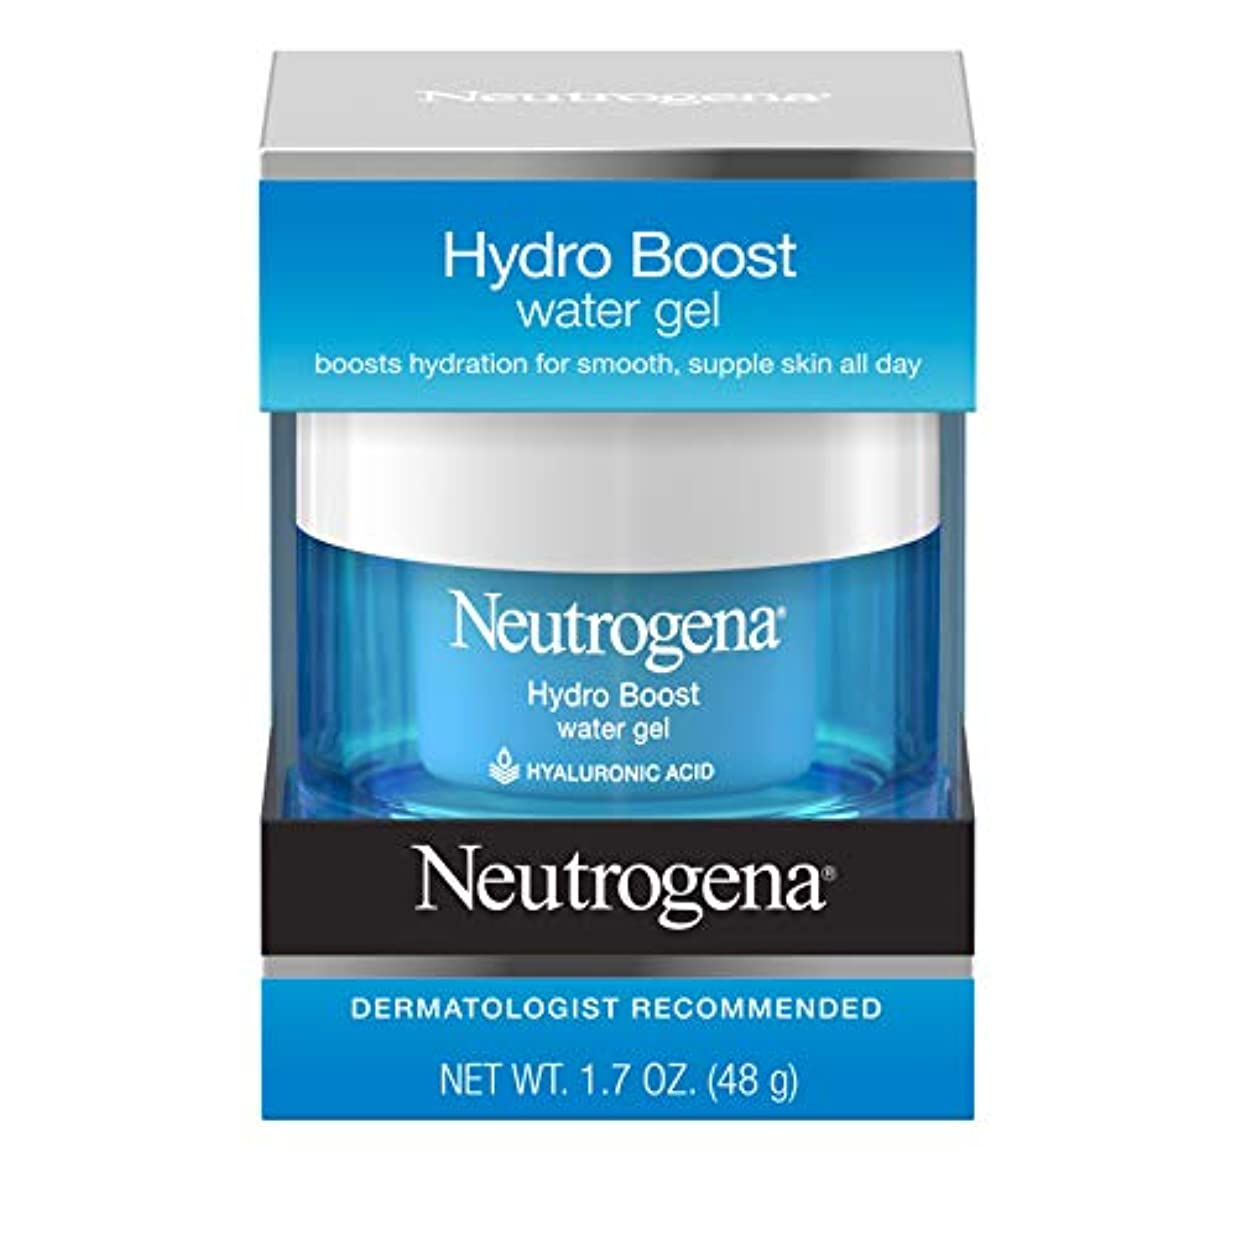 壁紙過ち世代Neutrogena Hydro Boost Water Gel、1.7 FL。Oz